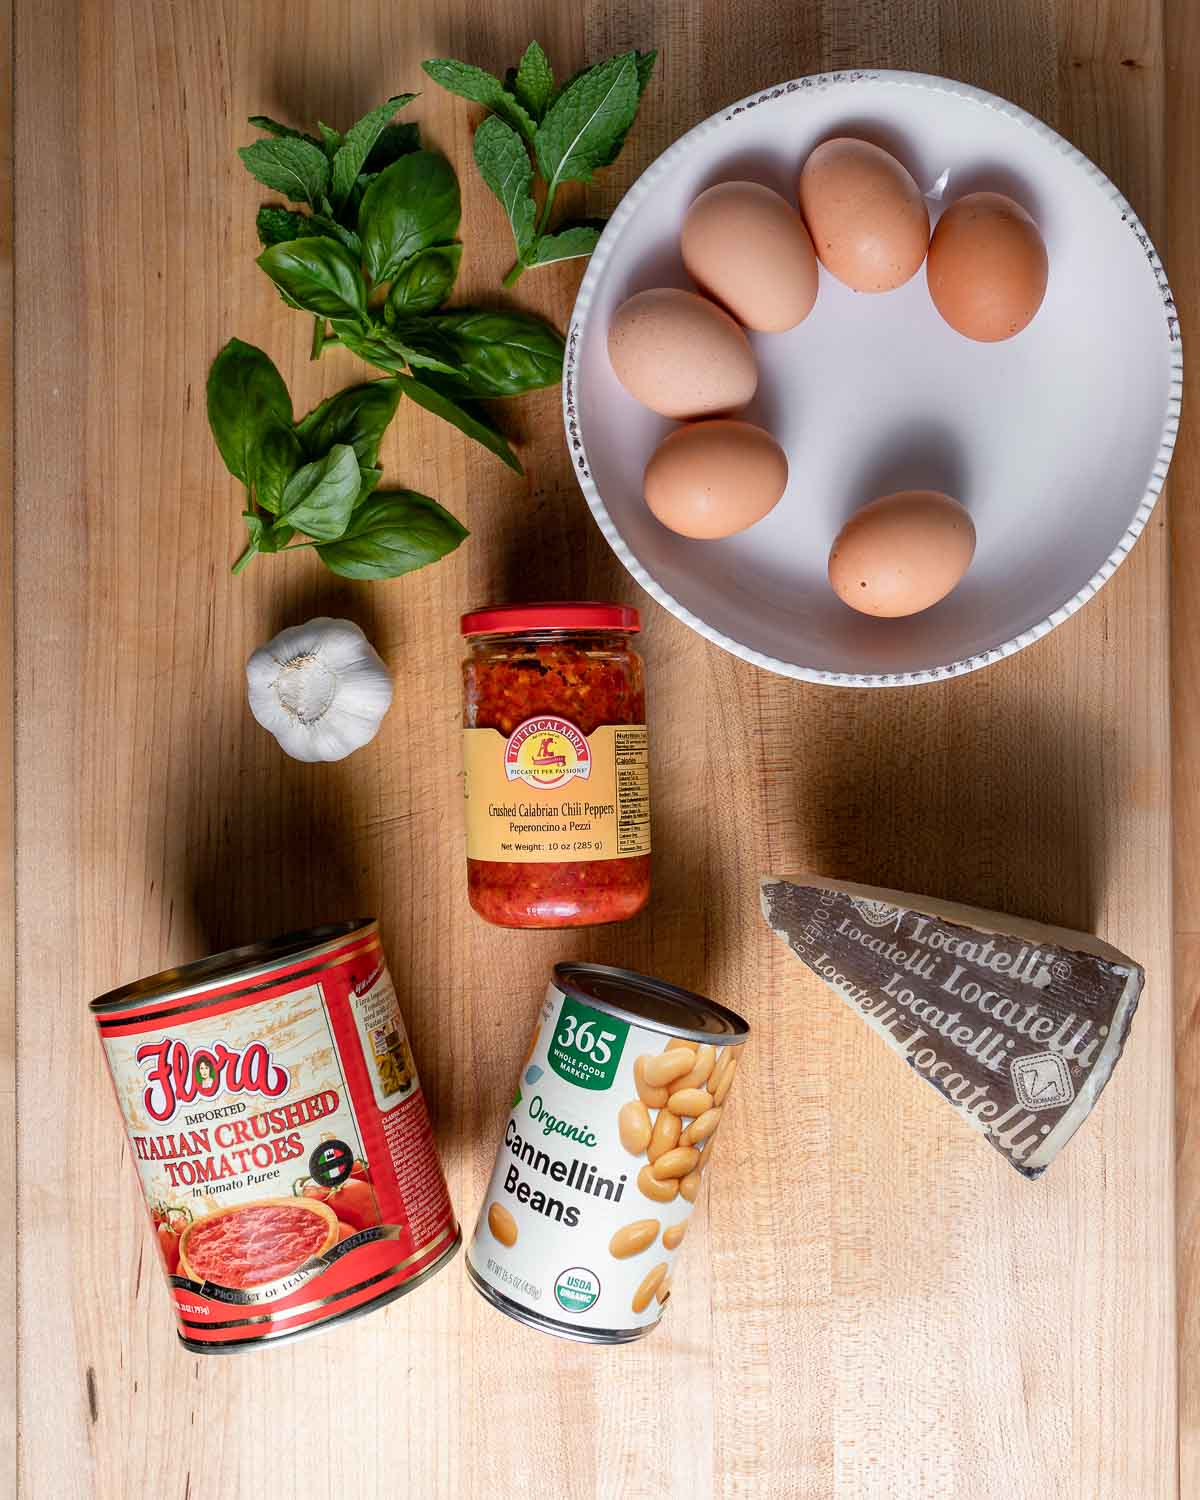 Ingredients shown: eggs, basil, mint, garlic, Calabrian chili paste, tomatoes, beans, and Romano cheese.